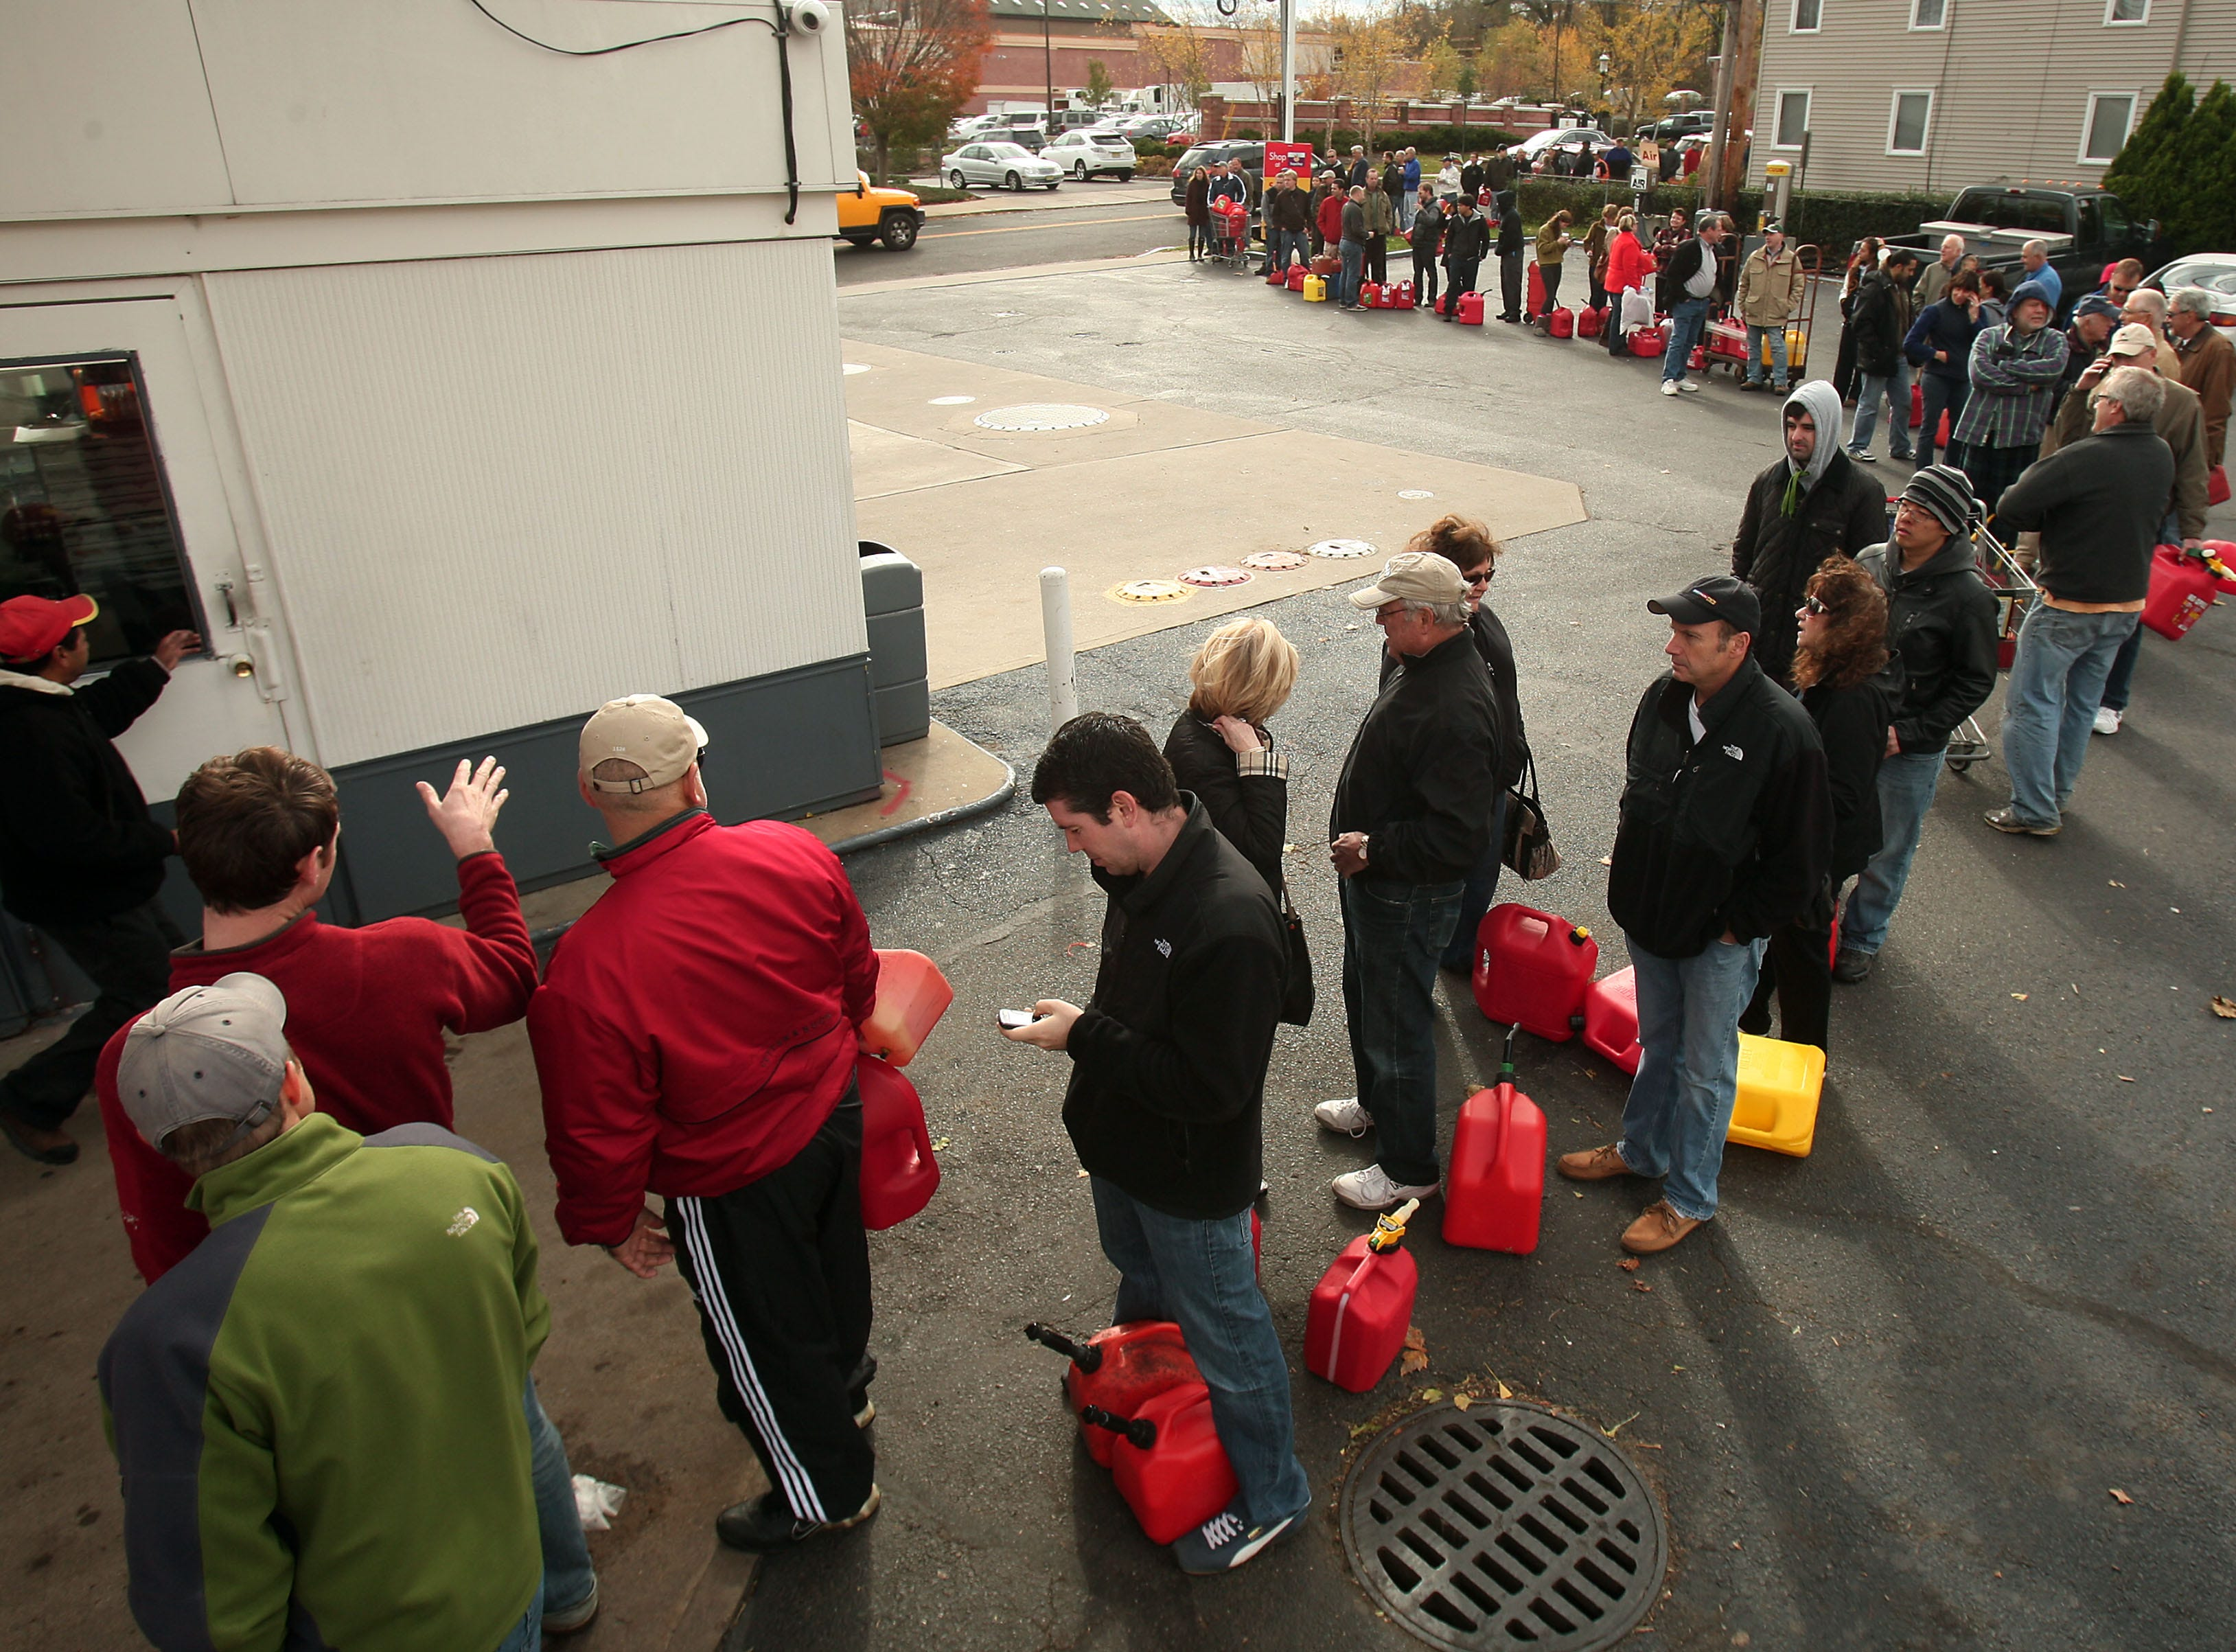 Madison, NJ- November 1, 2012--Residents line up at Madison Shell  to fill up cars and gas cans as locals continue the recovery process after Hurricane Sandy devastated the eastern seaboard.